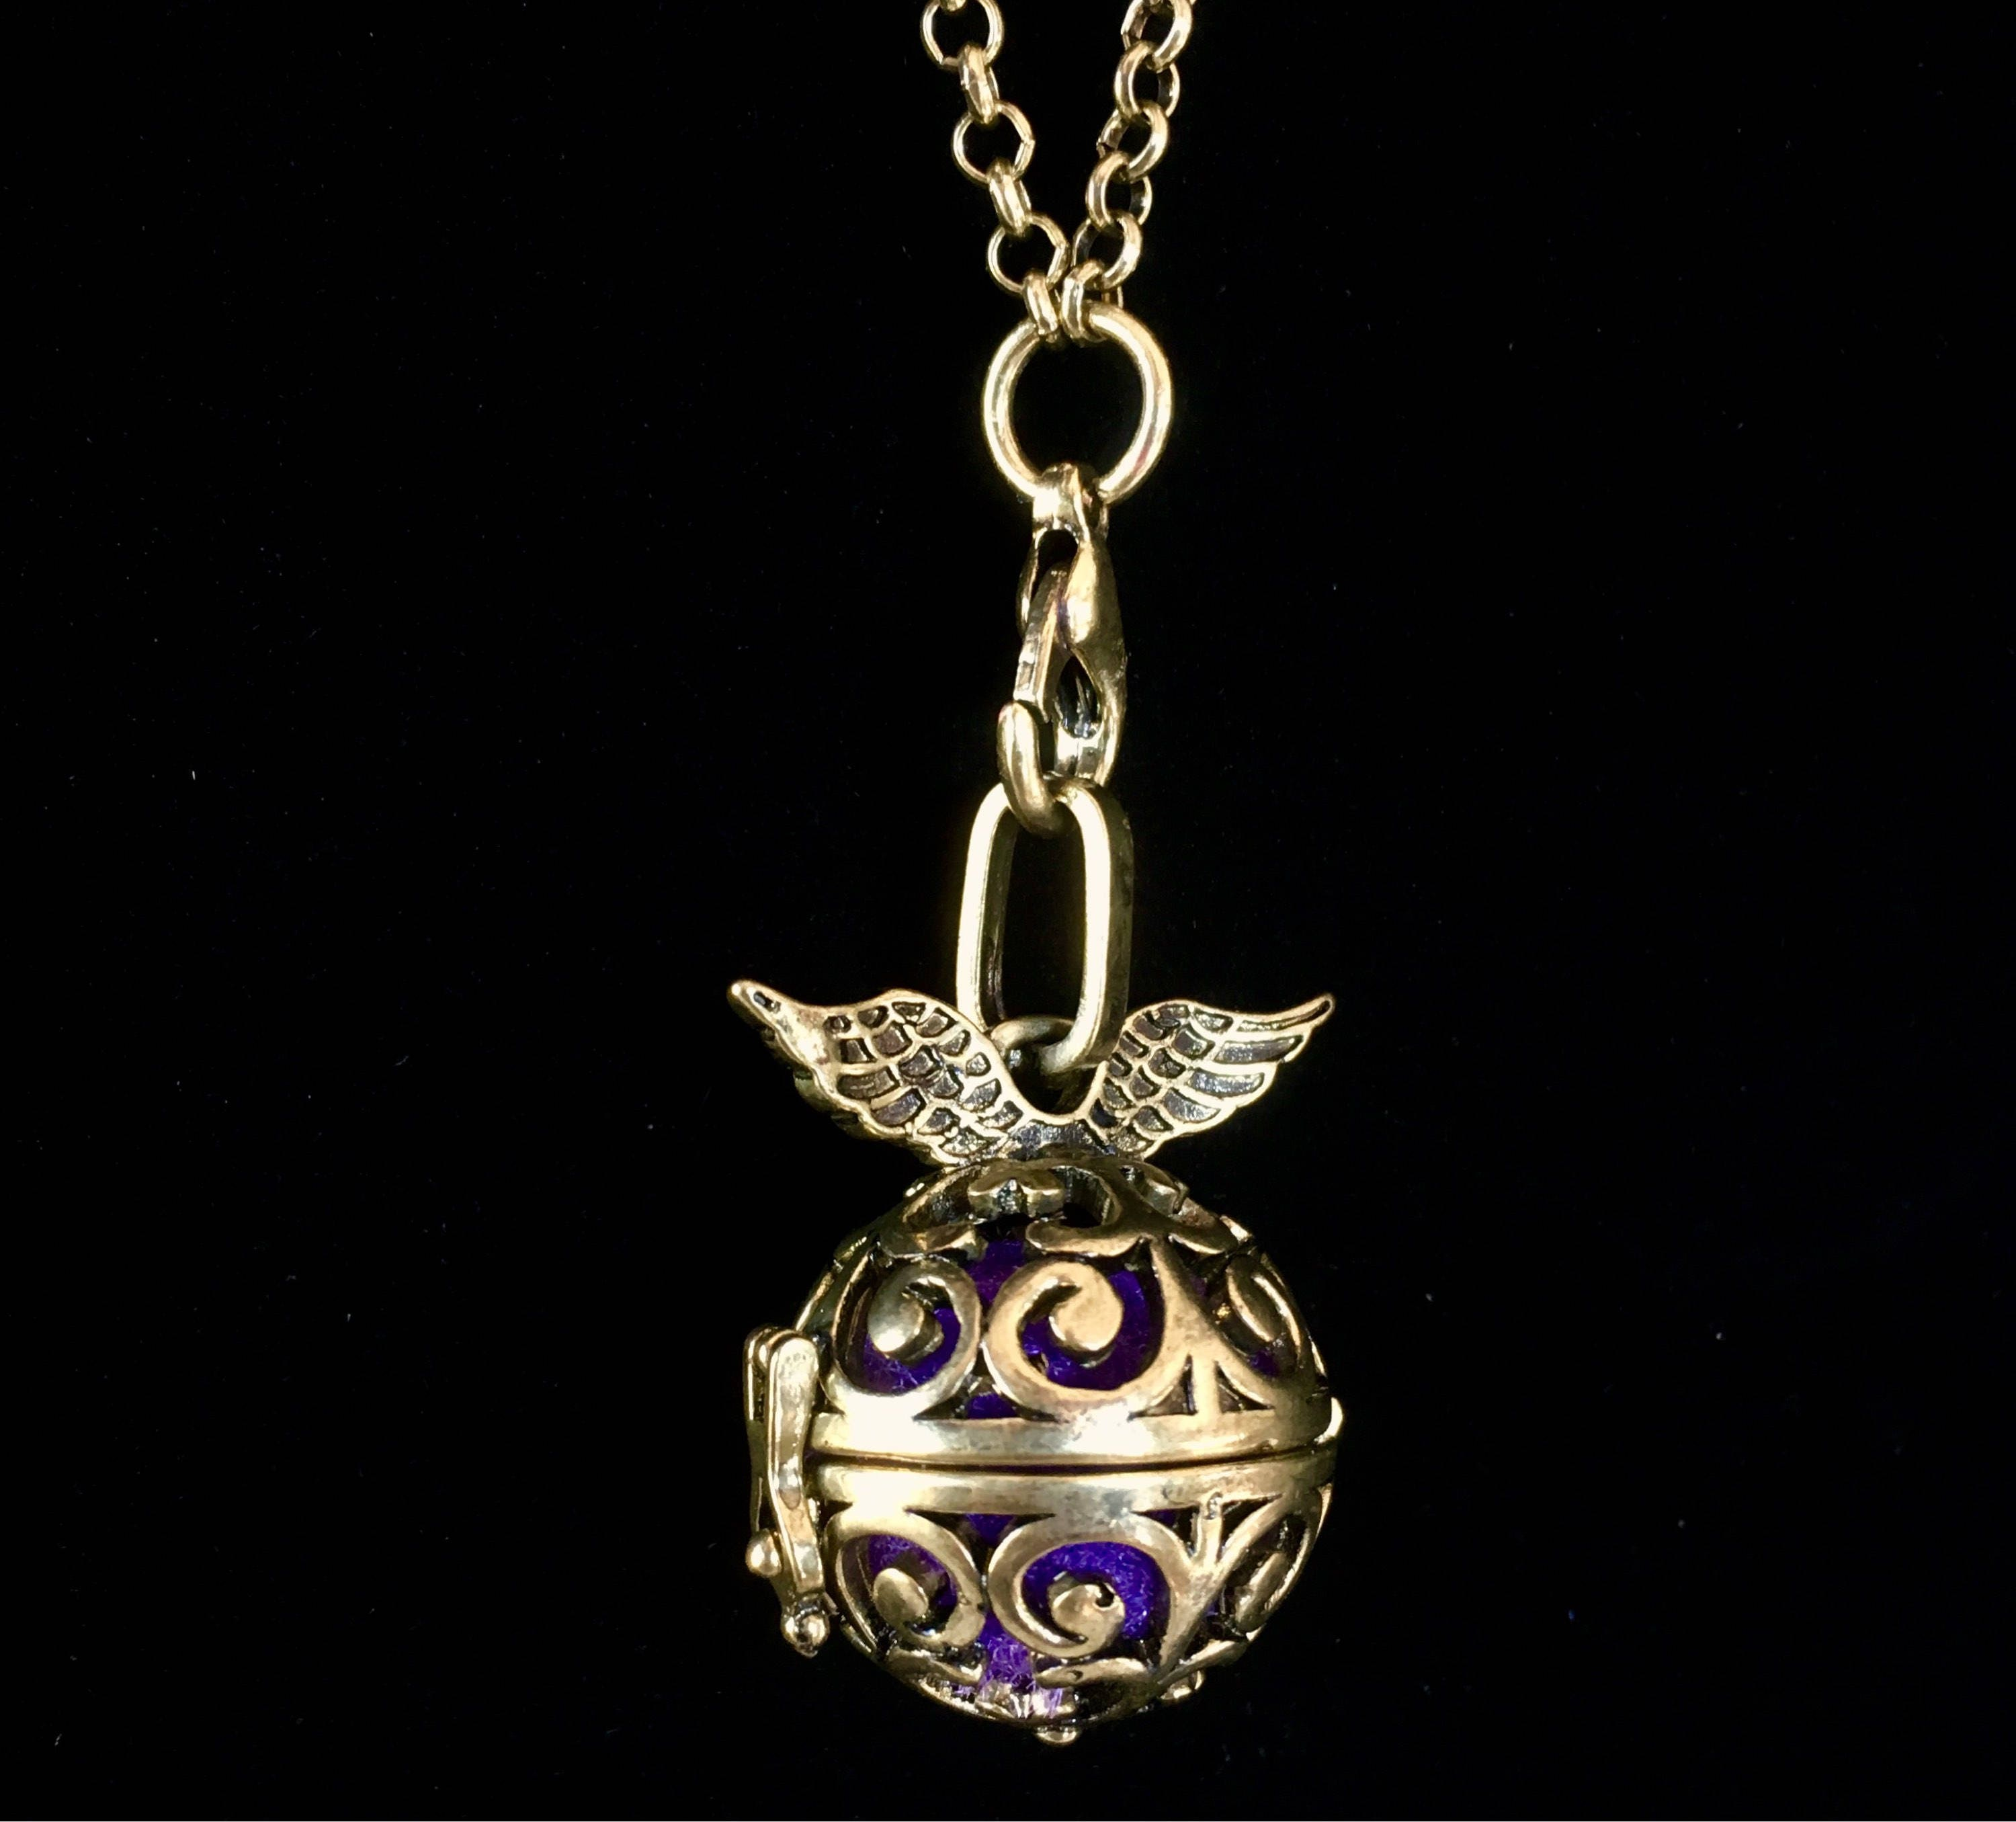 tree essential diffuser image locket oil freckle face necklace products of life